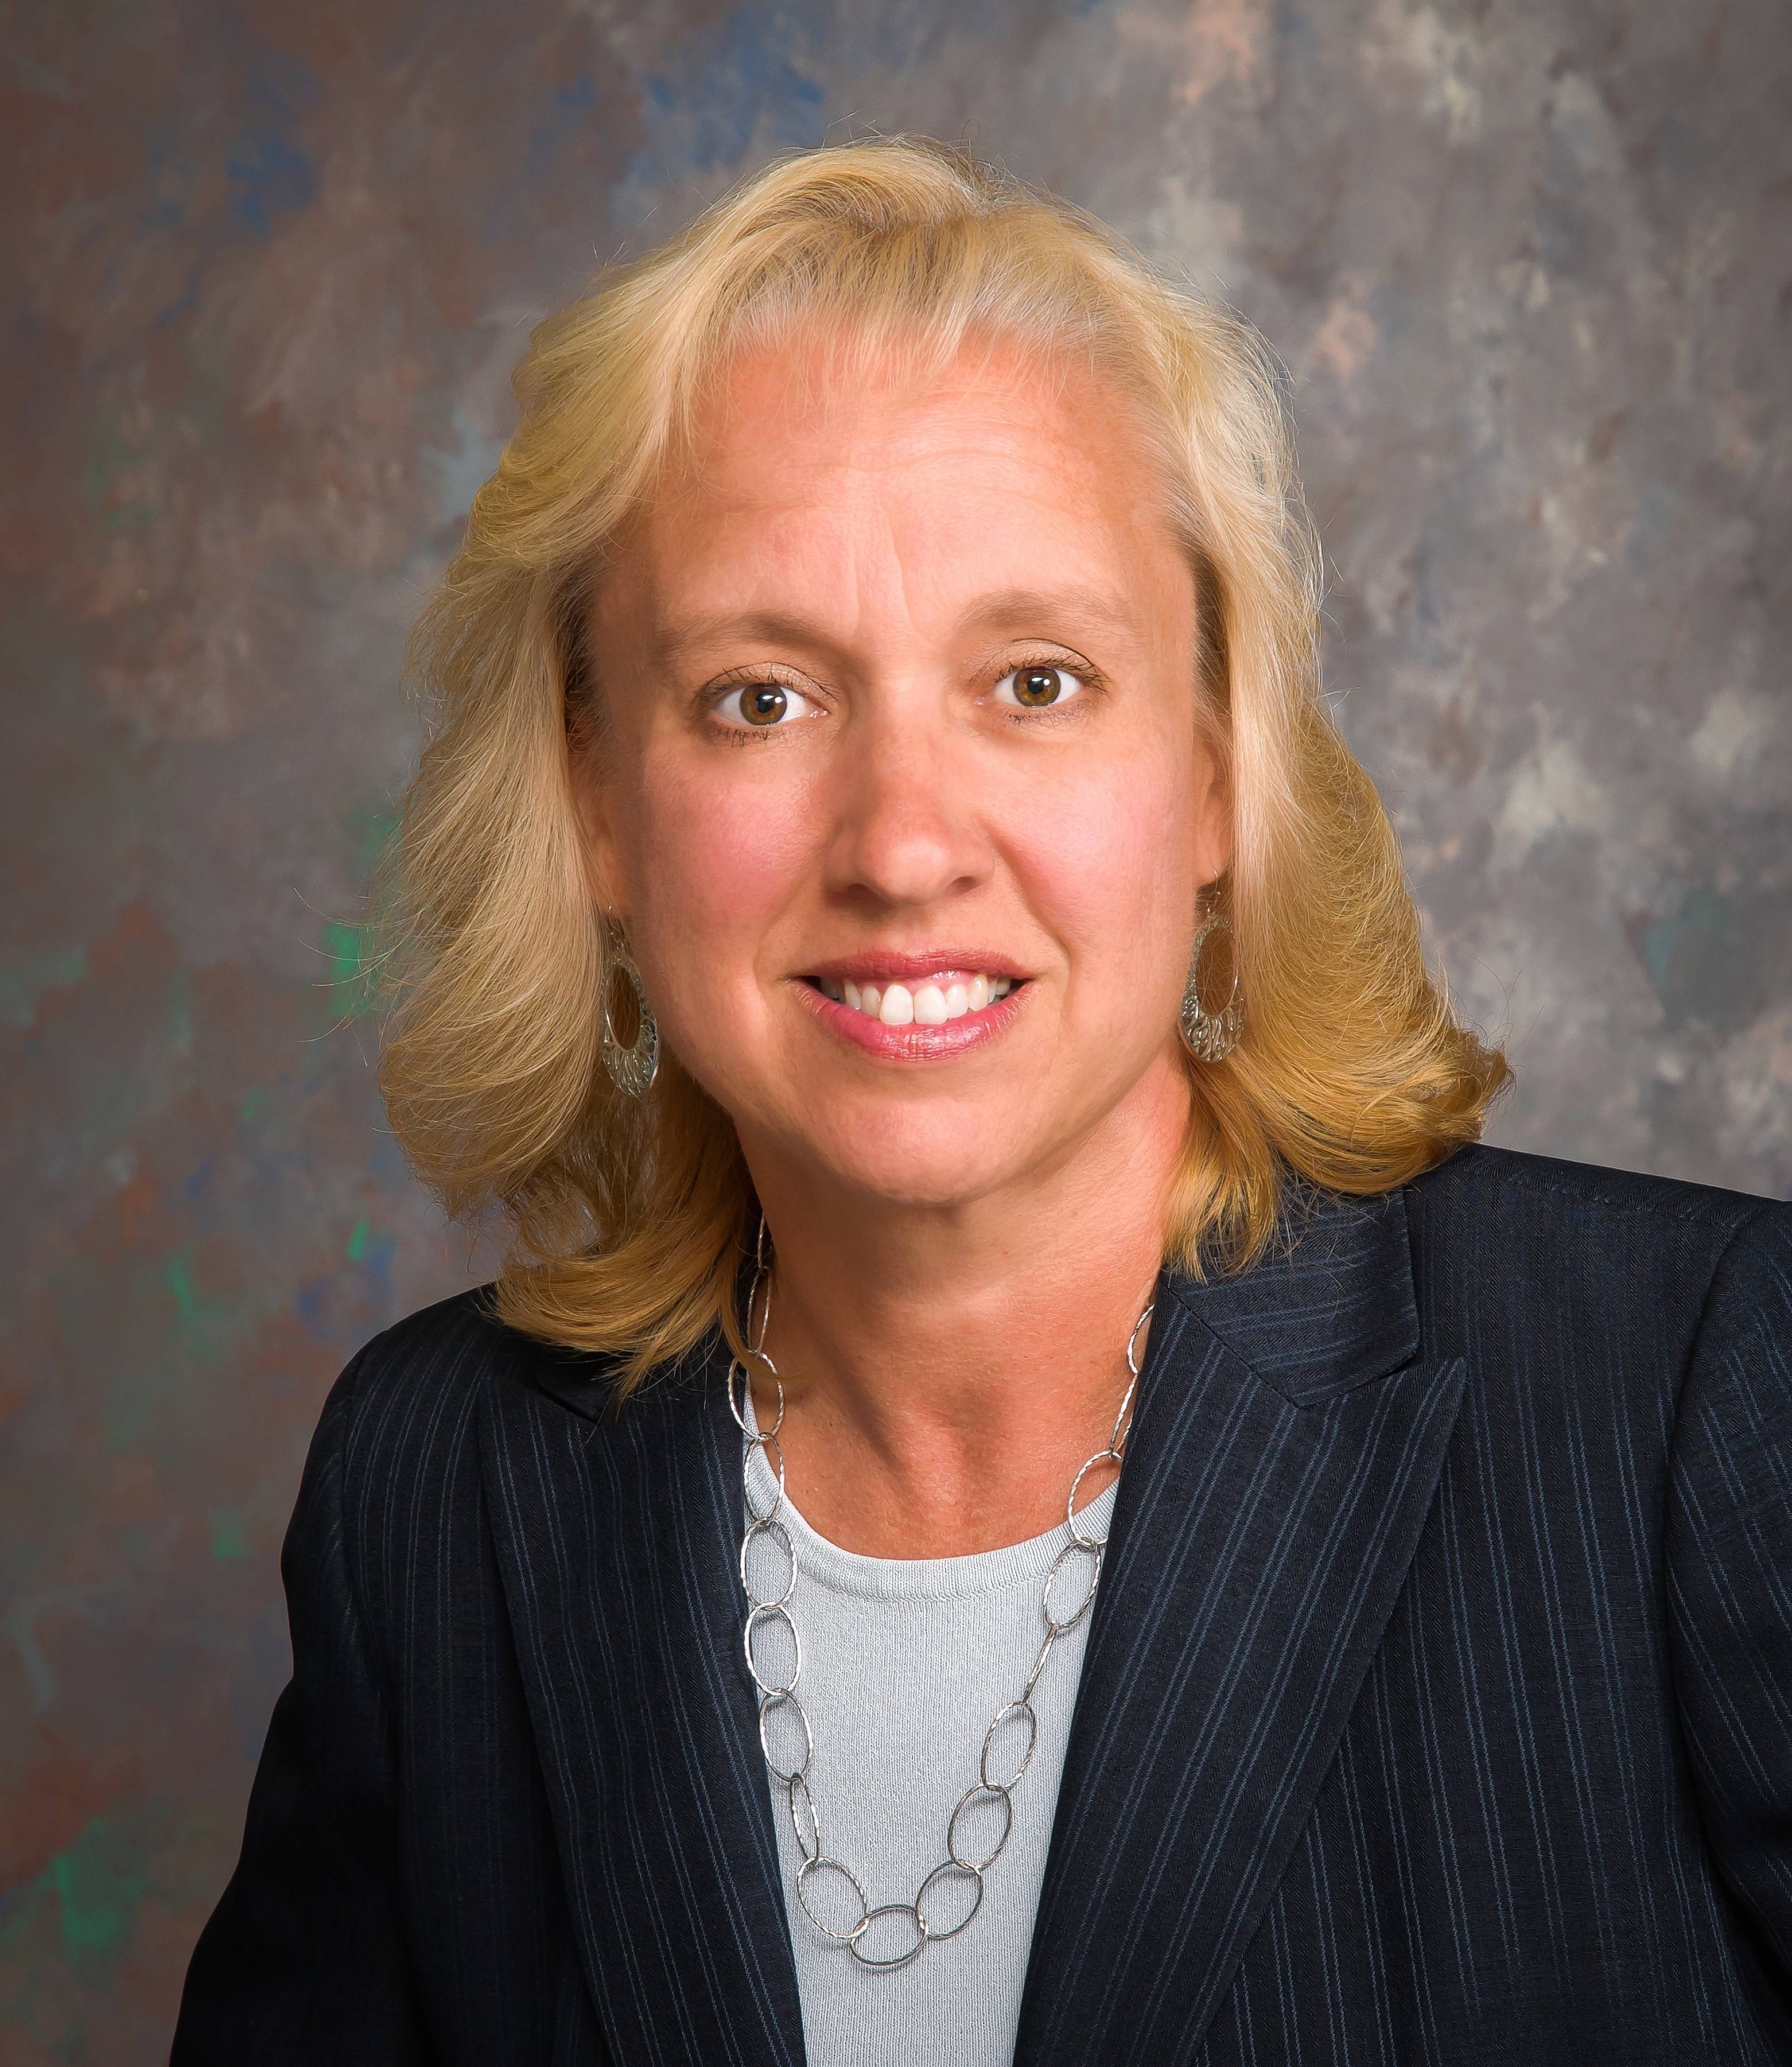 Donna Wandke is seeking re-election to a 4-year term on the Naperville Unit District 203 school board in the April 4 election.